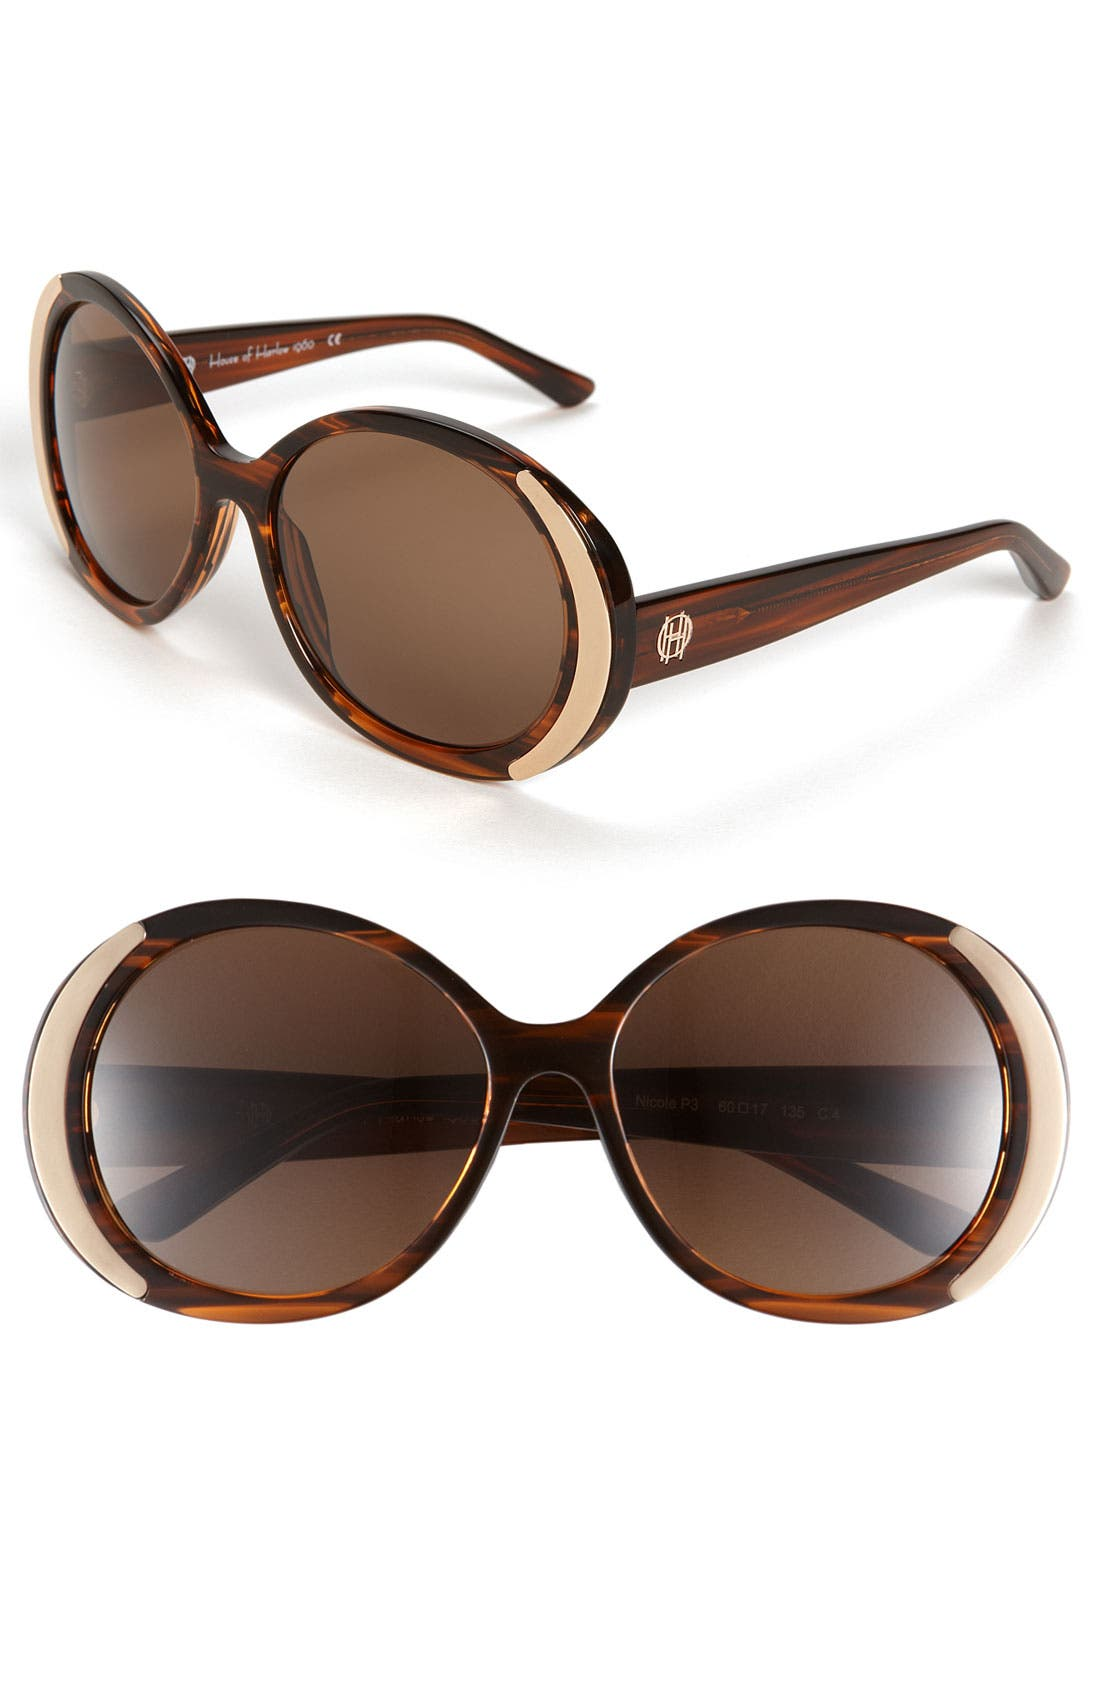 Main Image - House of Harlow 1960 'Nicole' Sunglasses